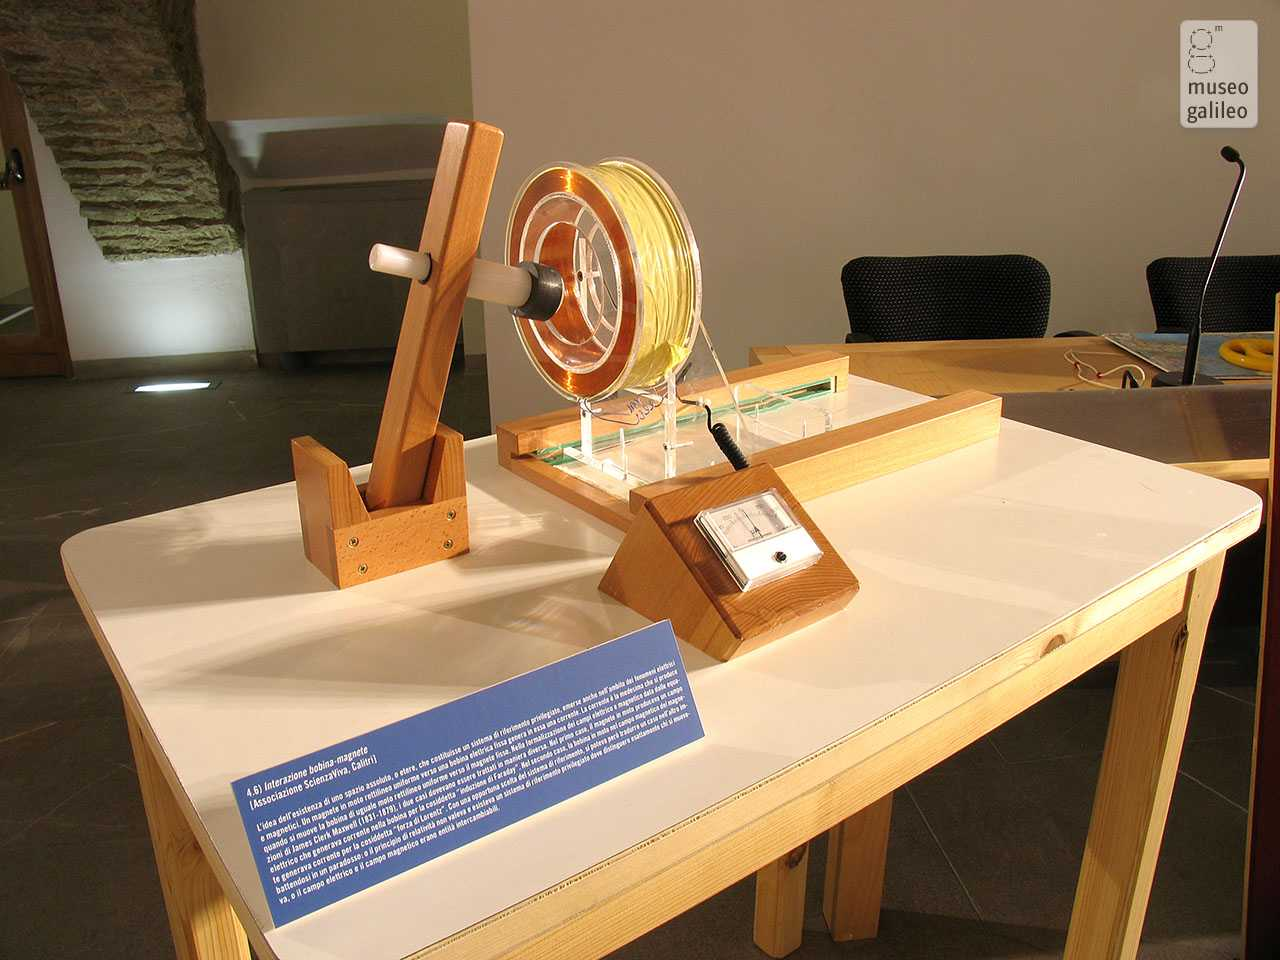 Relativity from Galileo to Einstein. Coil-magnet interaction, Florence, Museo di Storia della Scienza